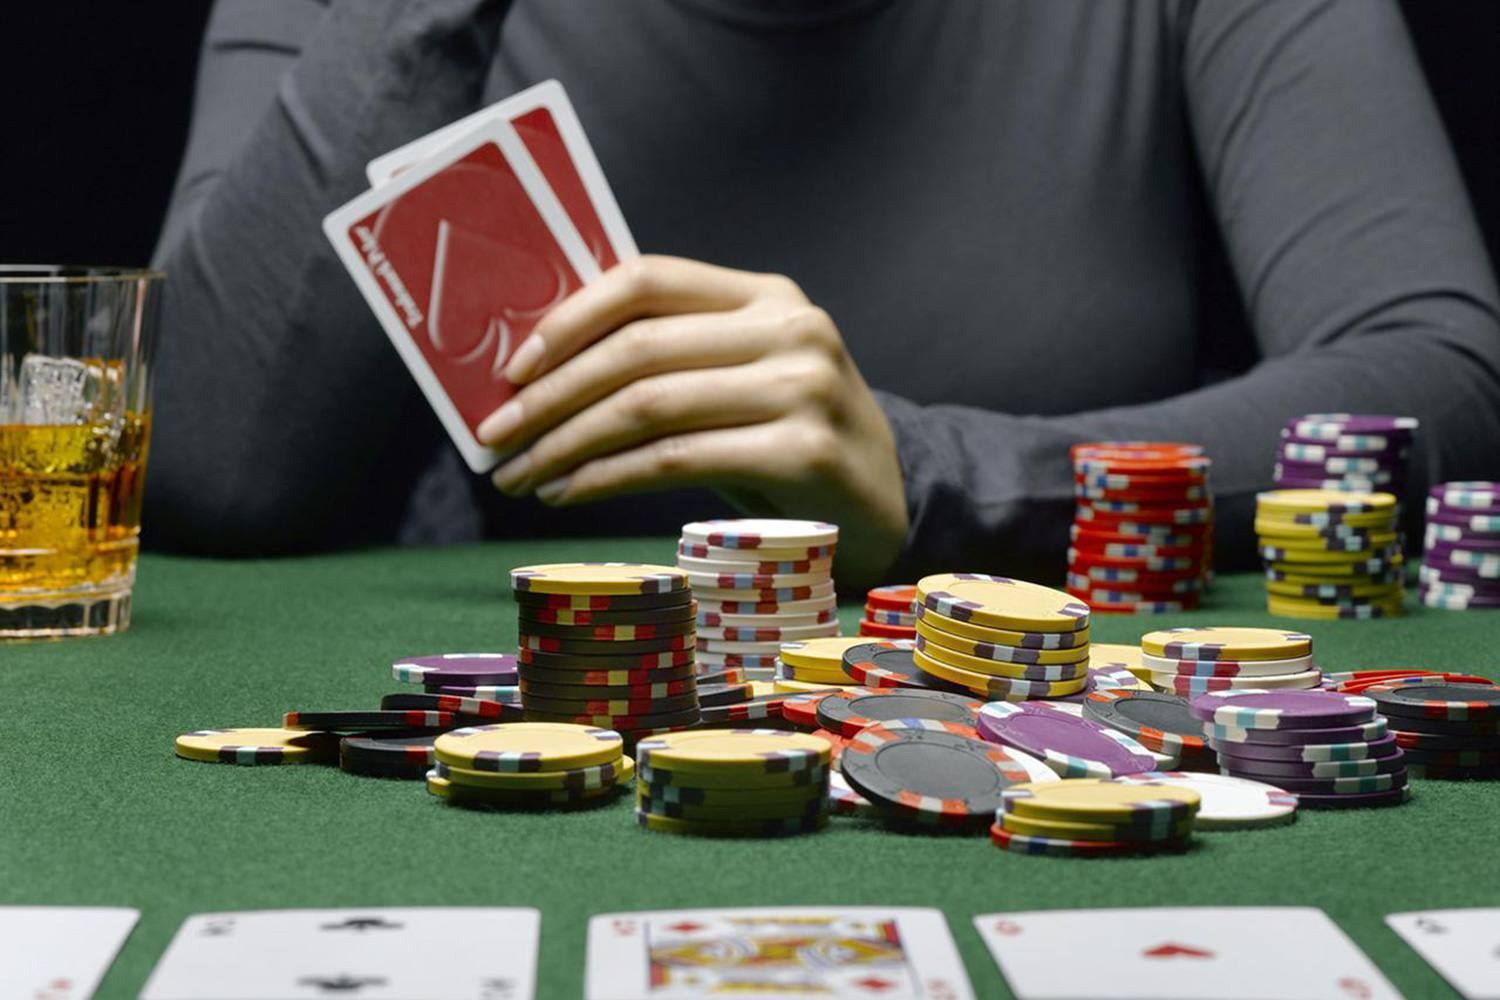 How to deal with an aggressive poker player